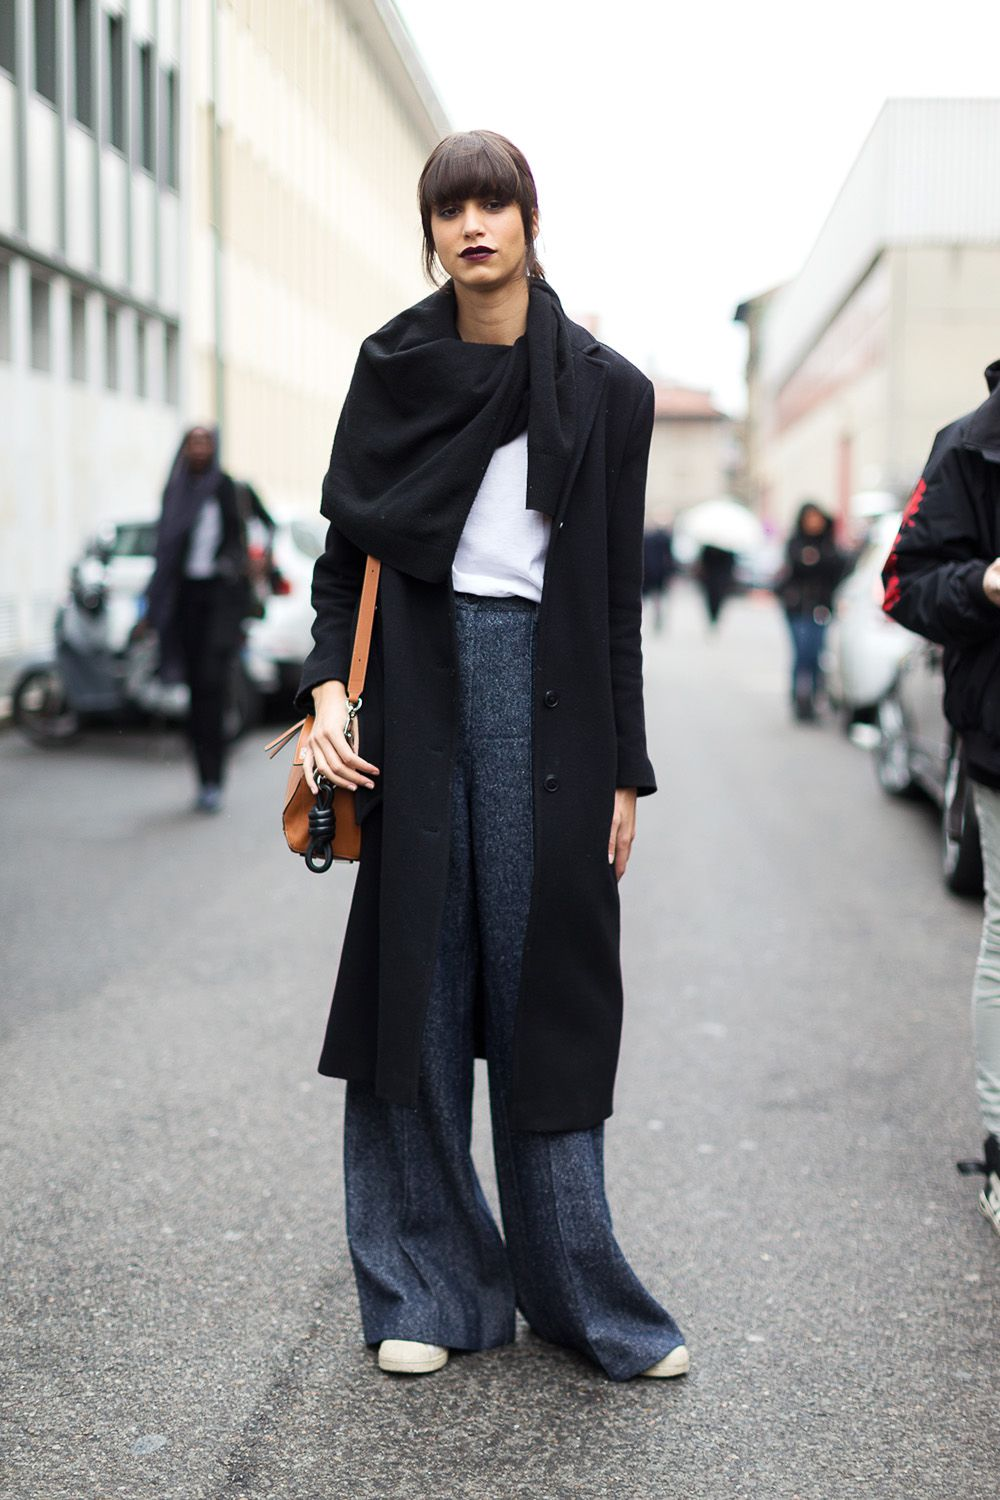 Ciao Milano: Street Style from Italy | 02. Street style ...